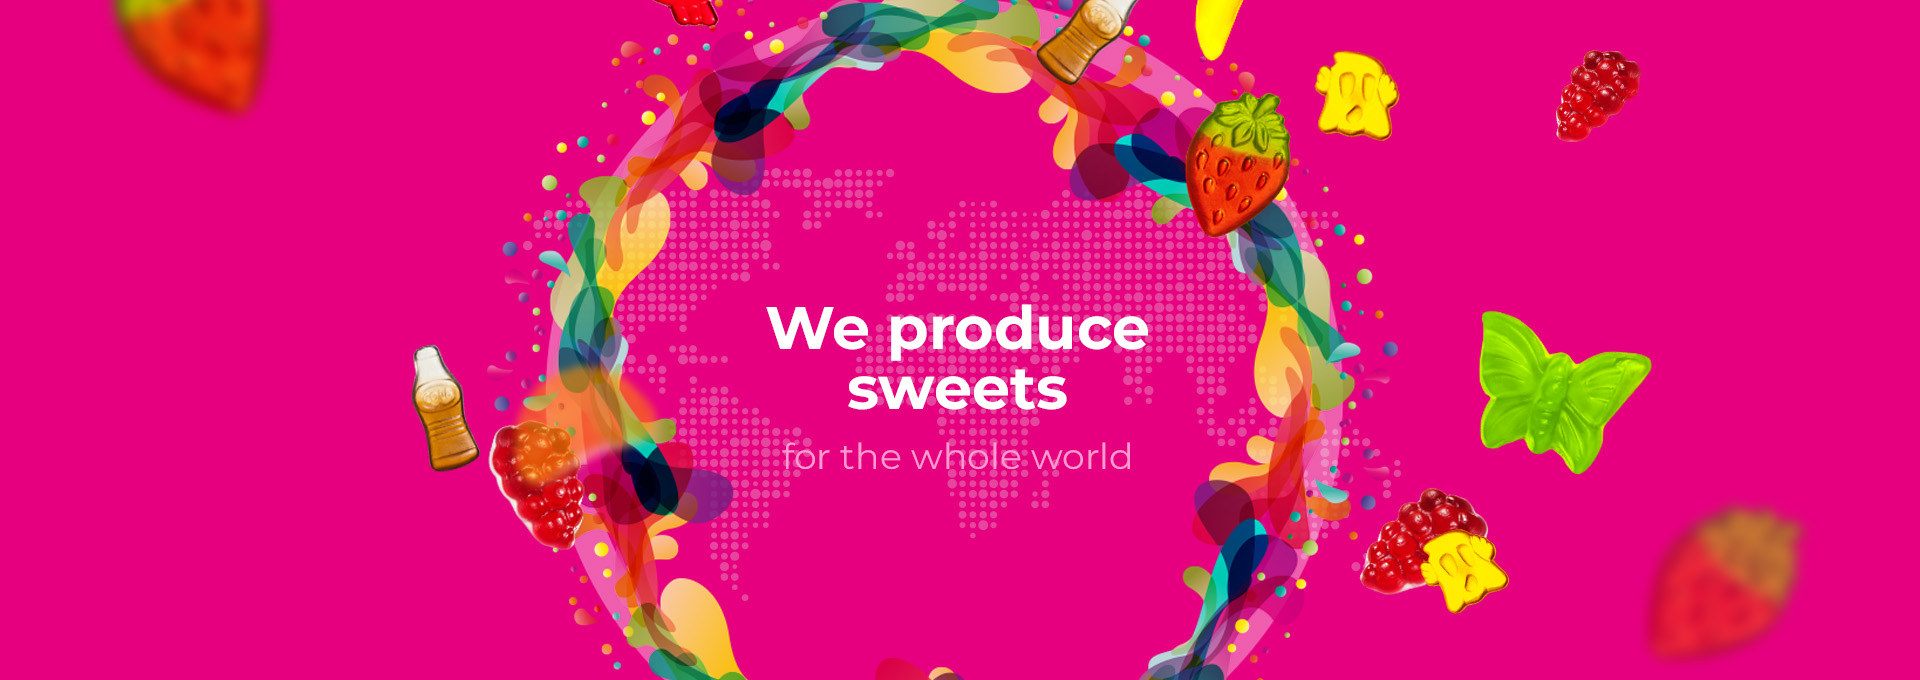 We produce sweets for the whole world